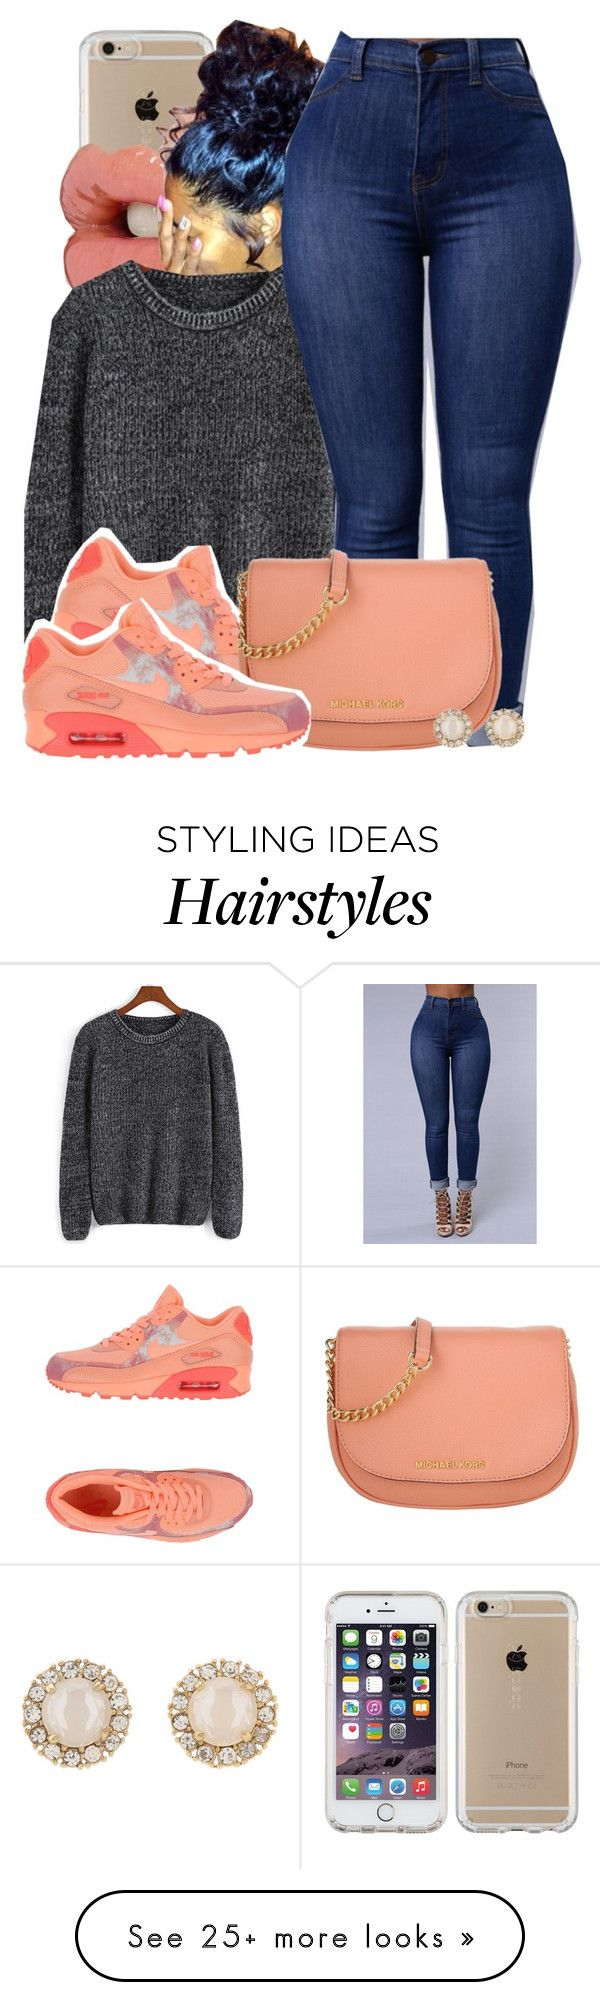 """""""Untitled #622"""" by b-elkstone on Polyvore featuring Speck, NIKE, Michael Kors and Kate Spade https://twitter.com/faefmgianm/status/895095114724327424"""